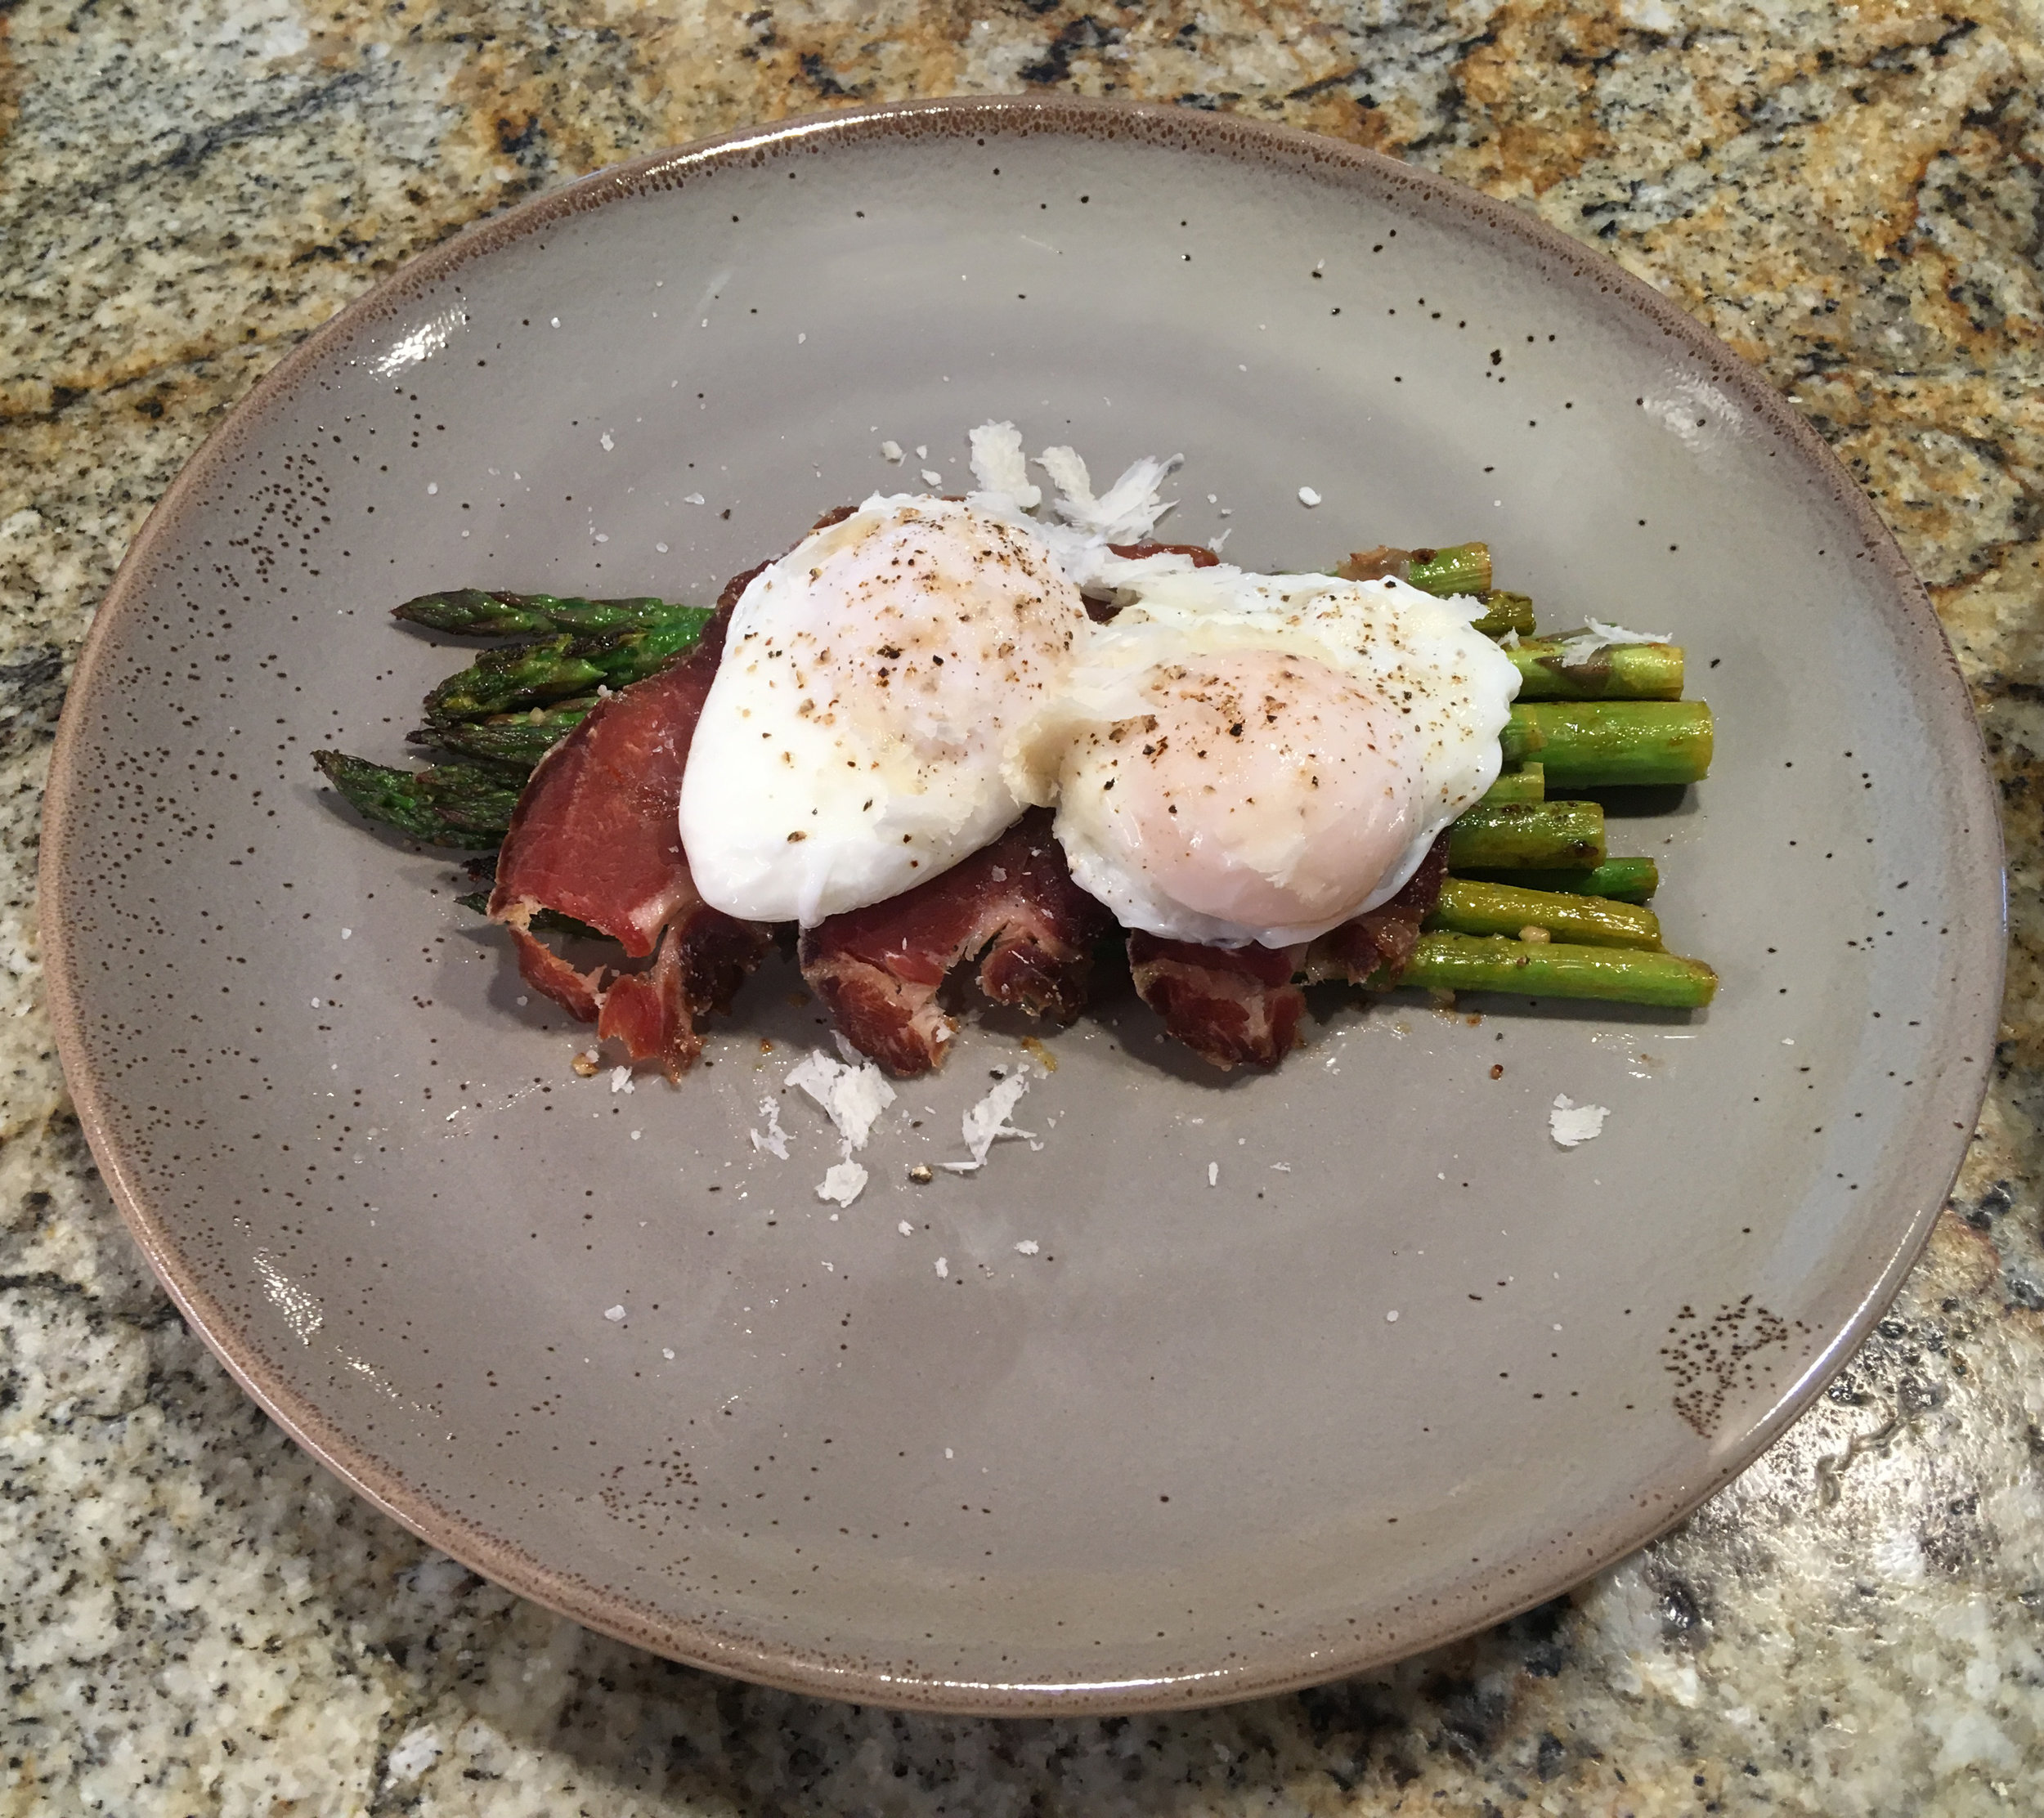 Poached Eggs and Asparagus - Asparagus sauteed in oil, garlic, lemon zest, and lemon juice, topped with Mary Ann's homemade prosciutto and our farm fresh poached eggs, and finished with shaved parmesan.